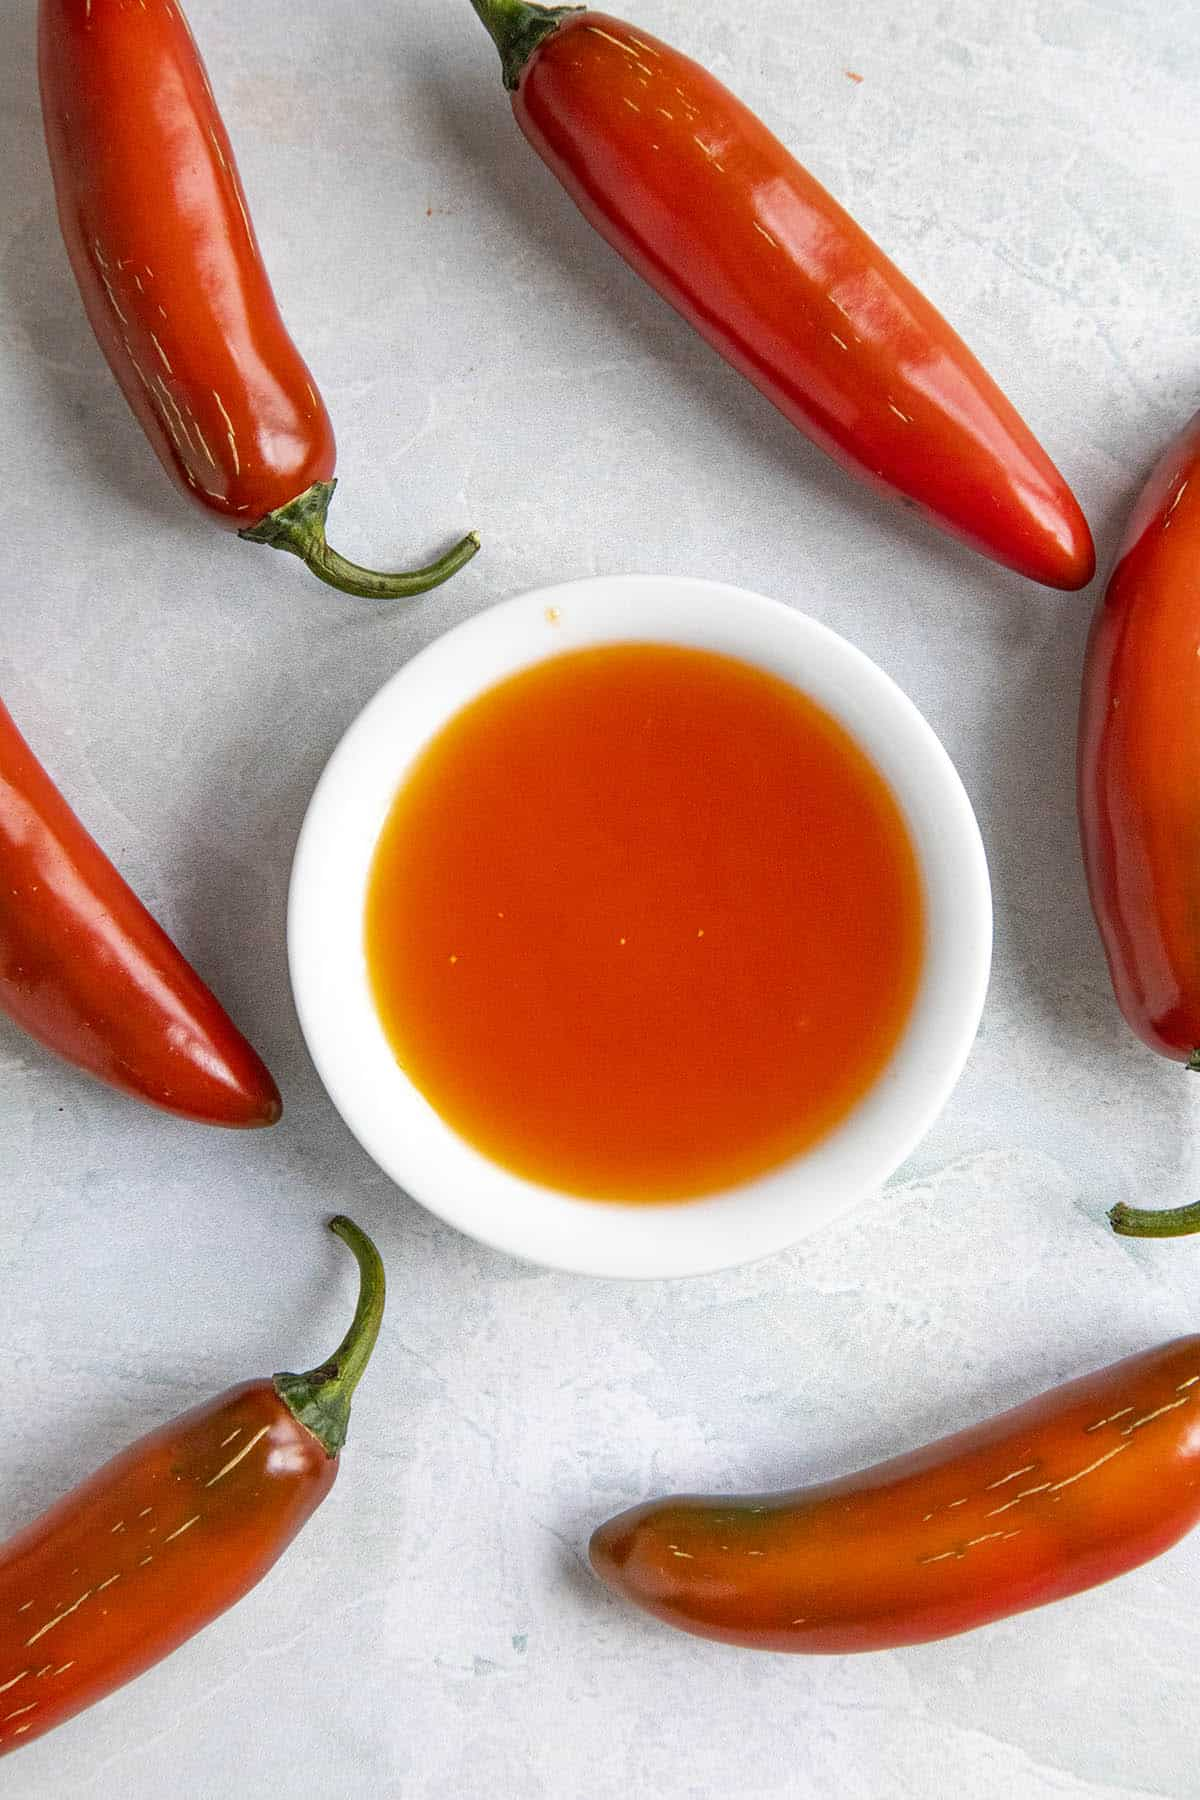 Red Serrano Hot Sauce in a small bowl, surrounded by red serrano peppers